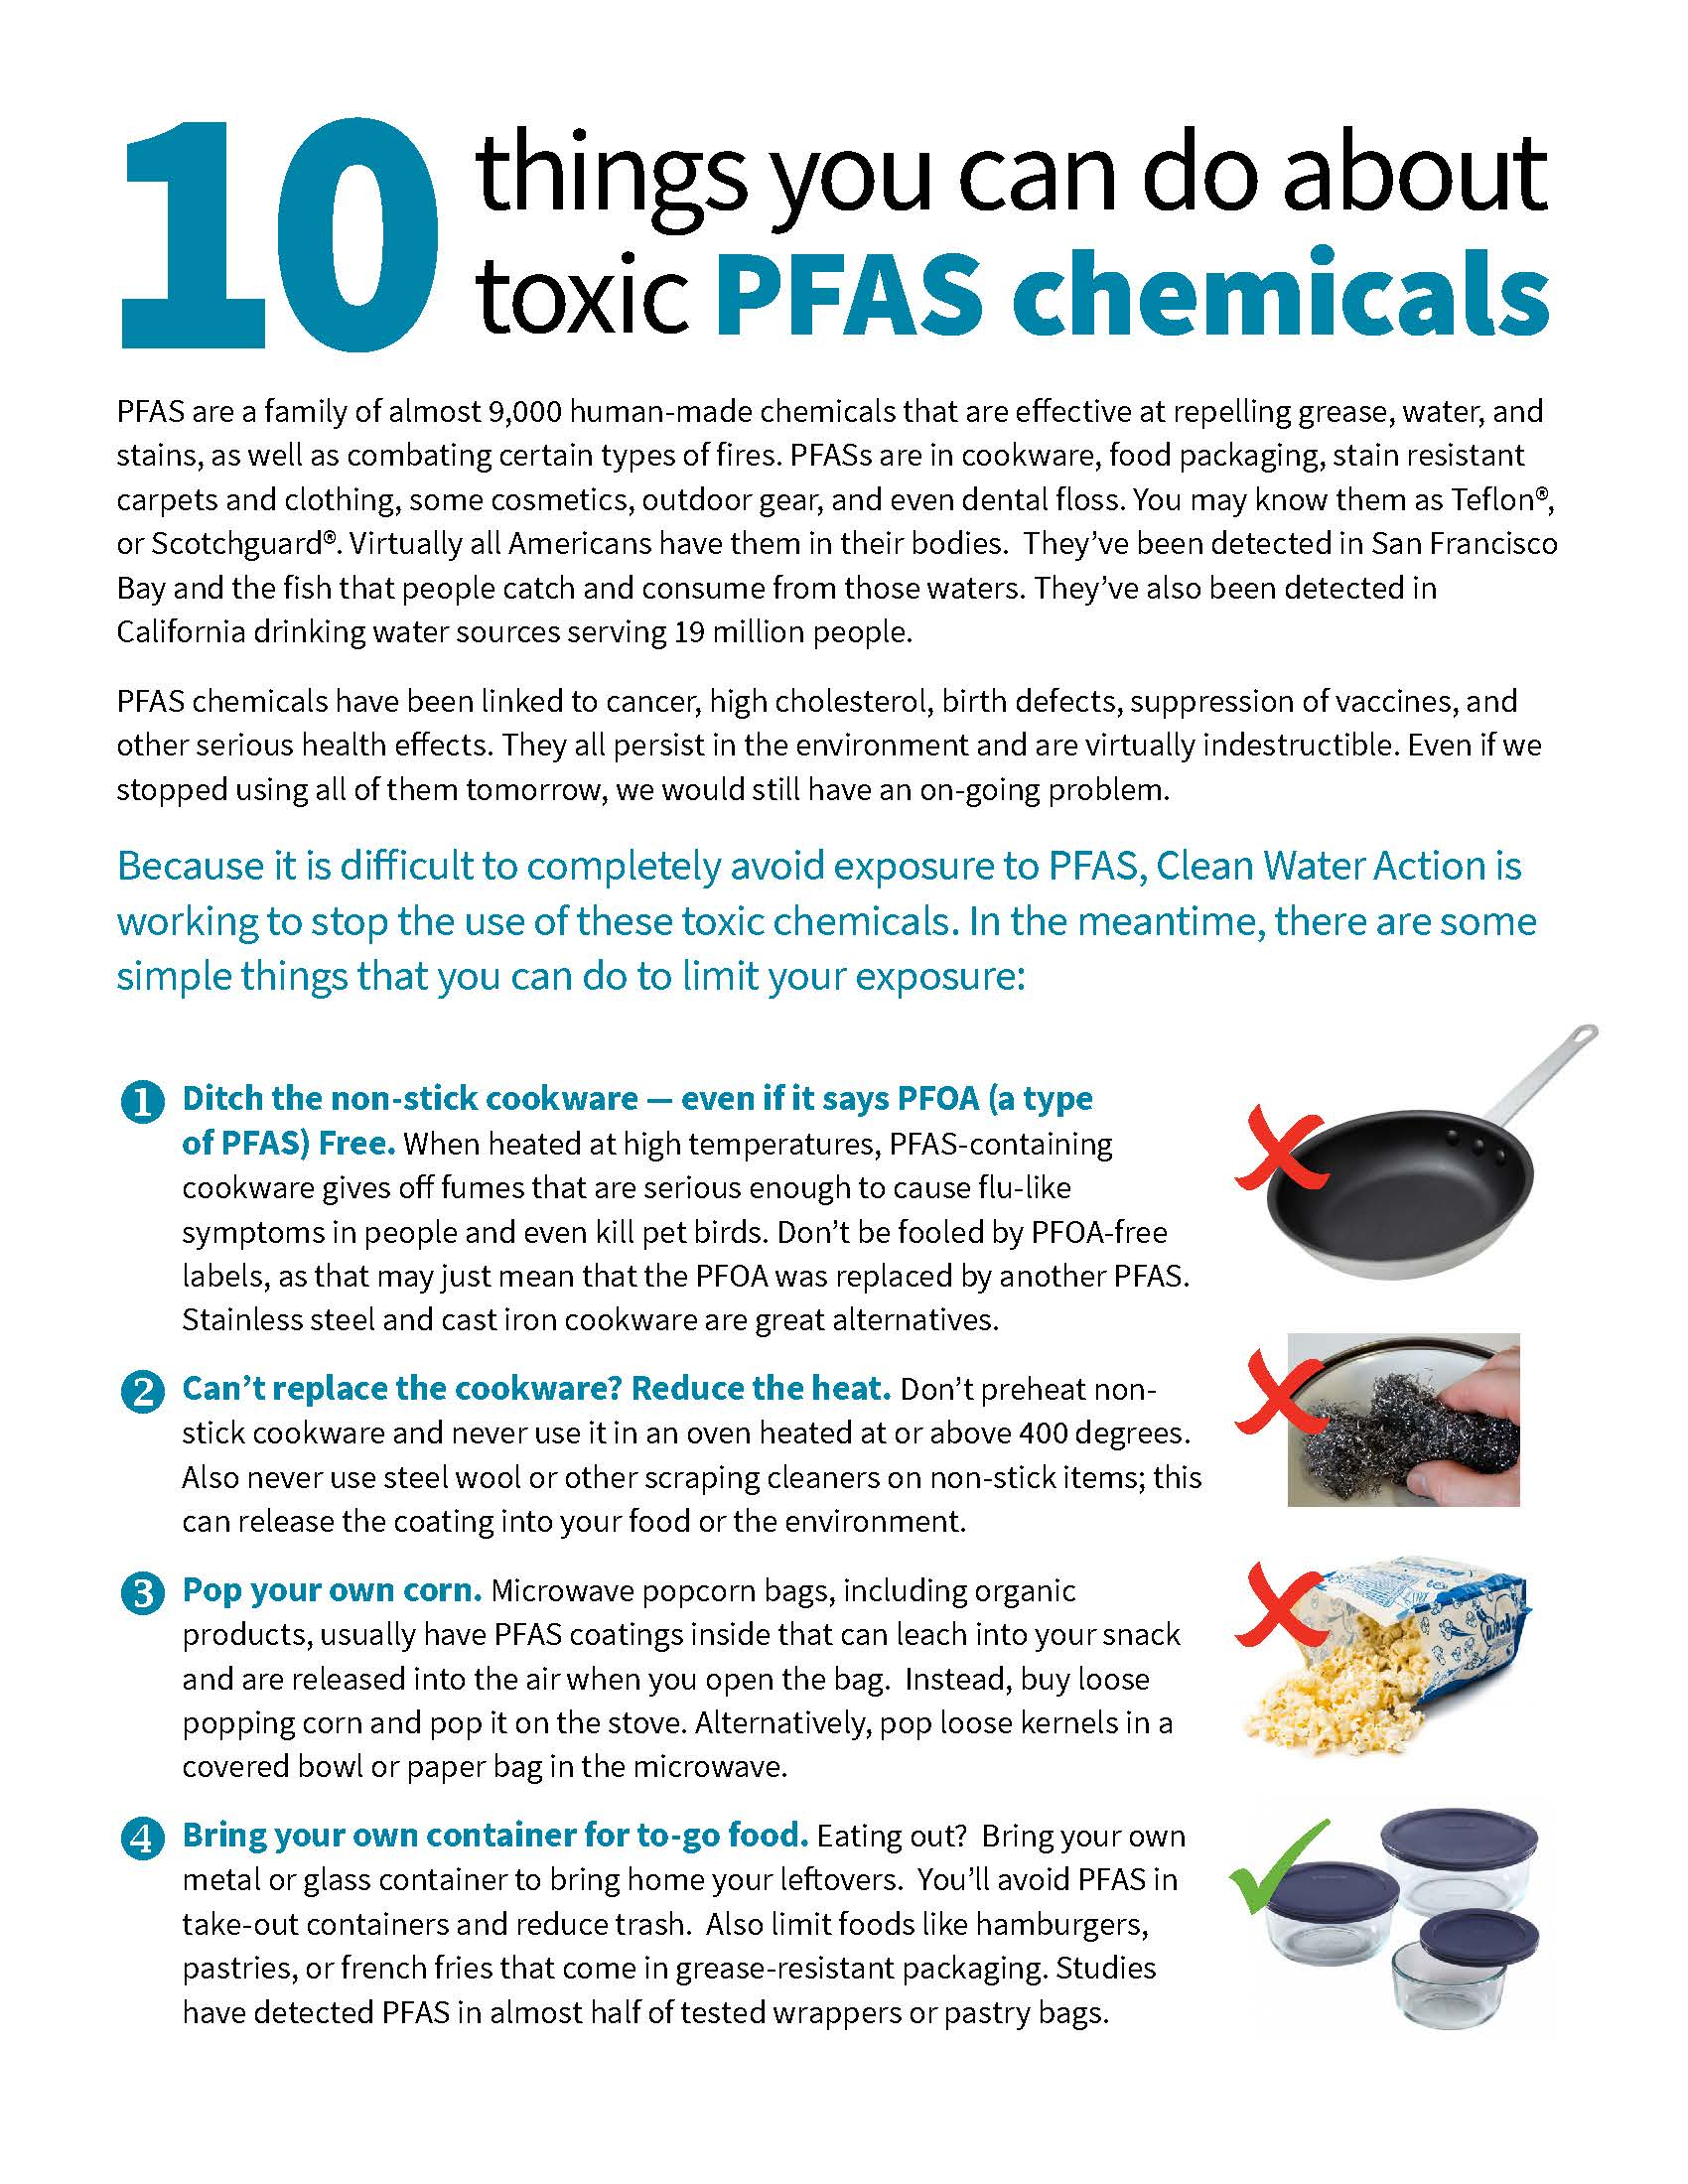 10 Ways You Can Take Action on Toxic PFAS